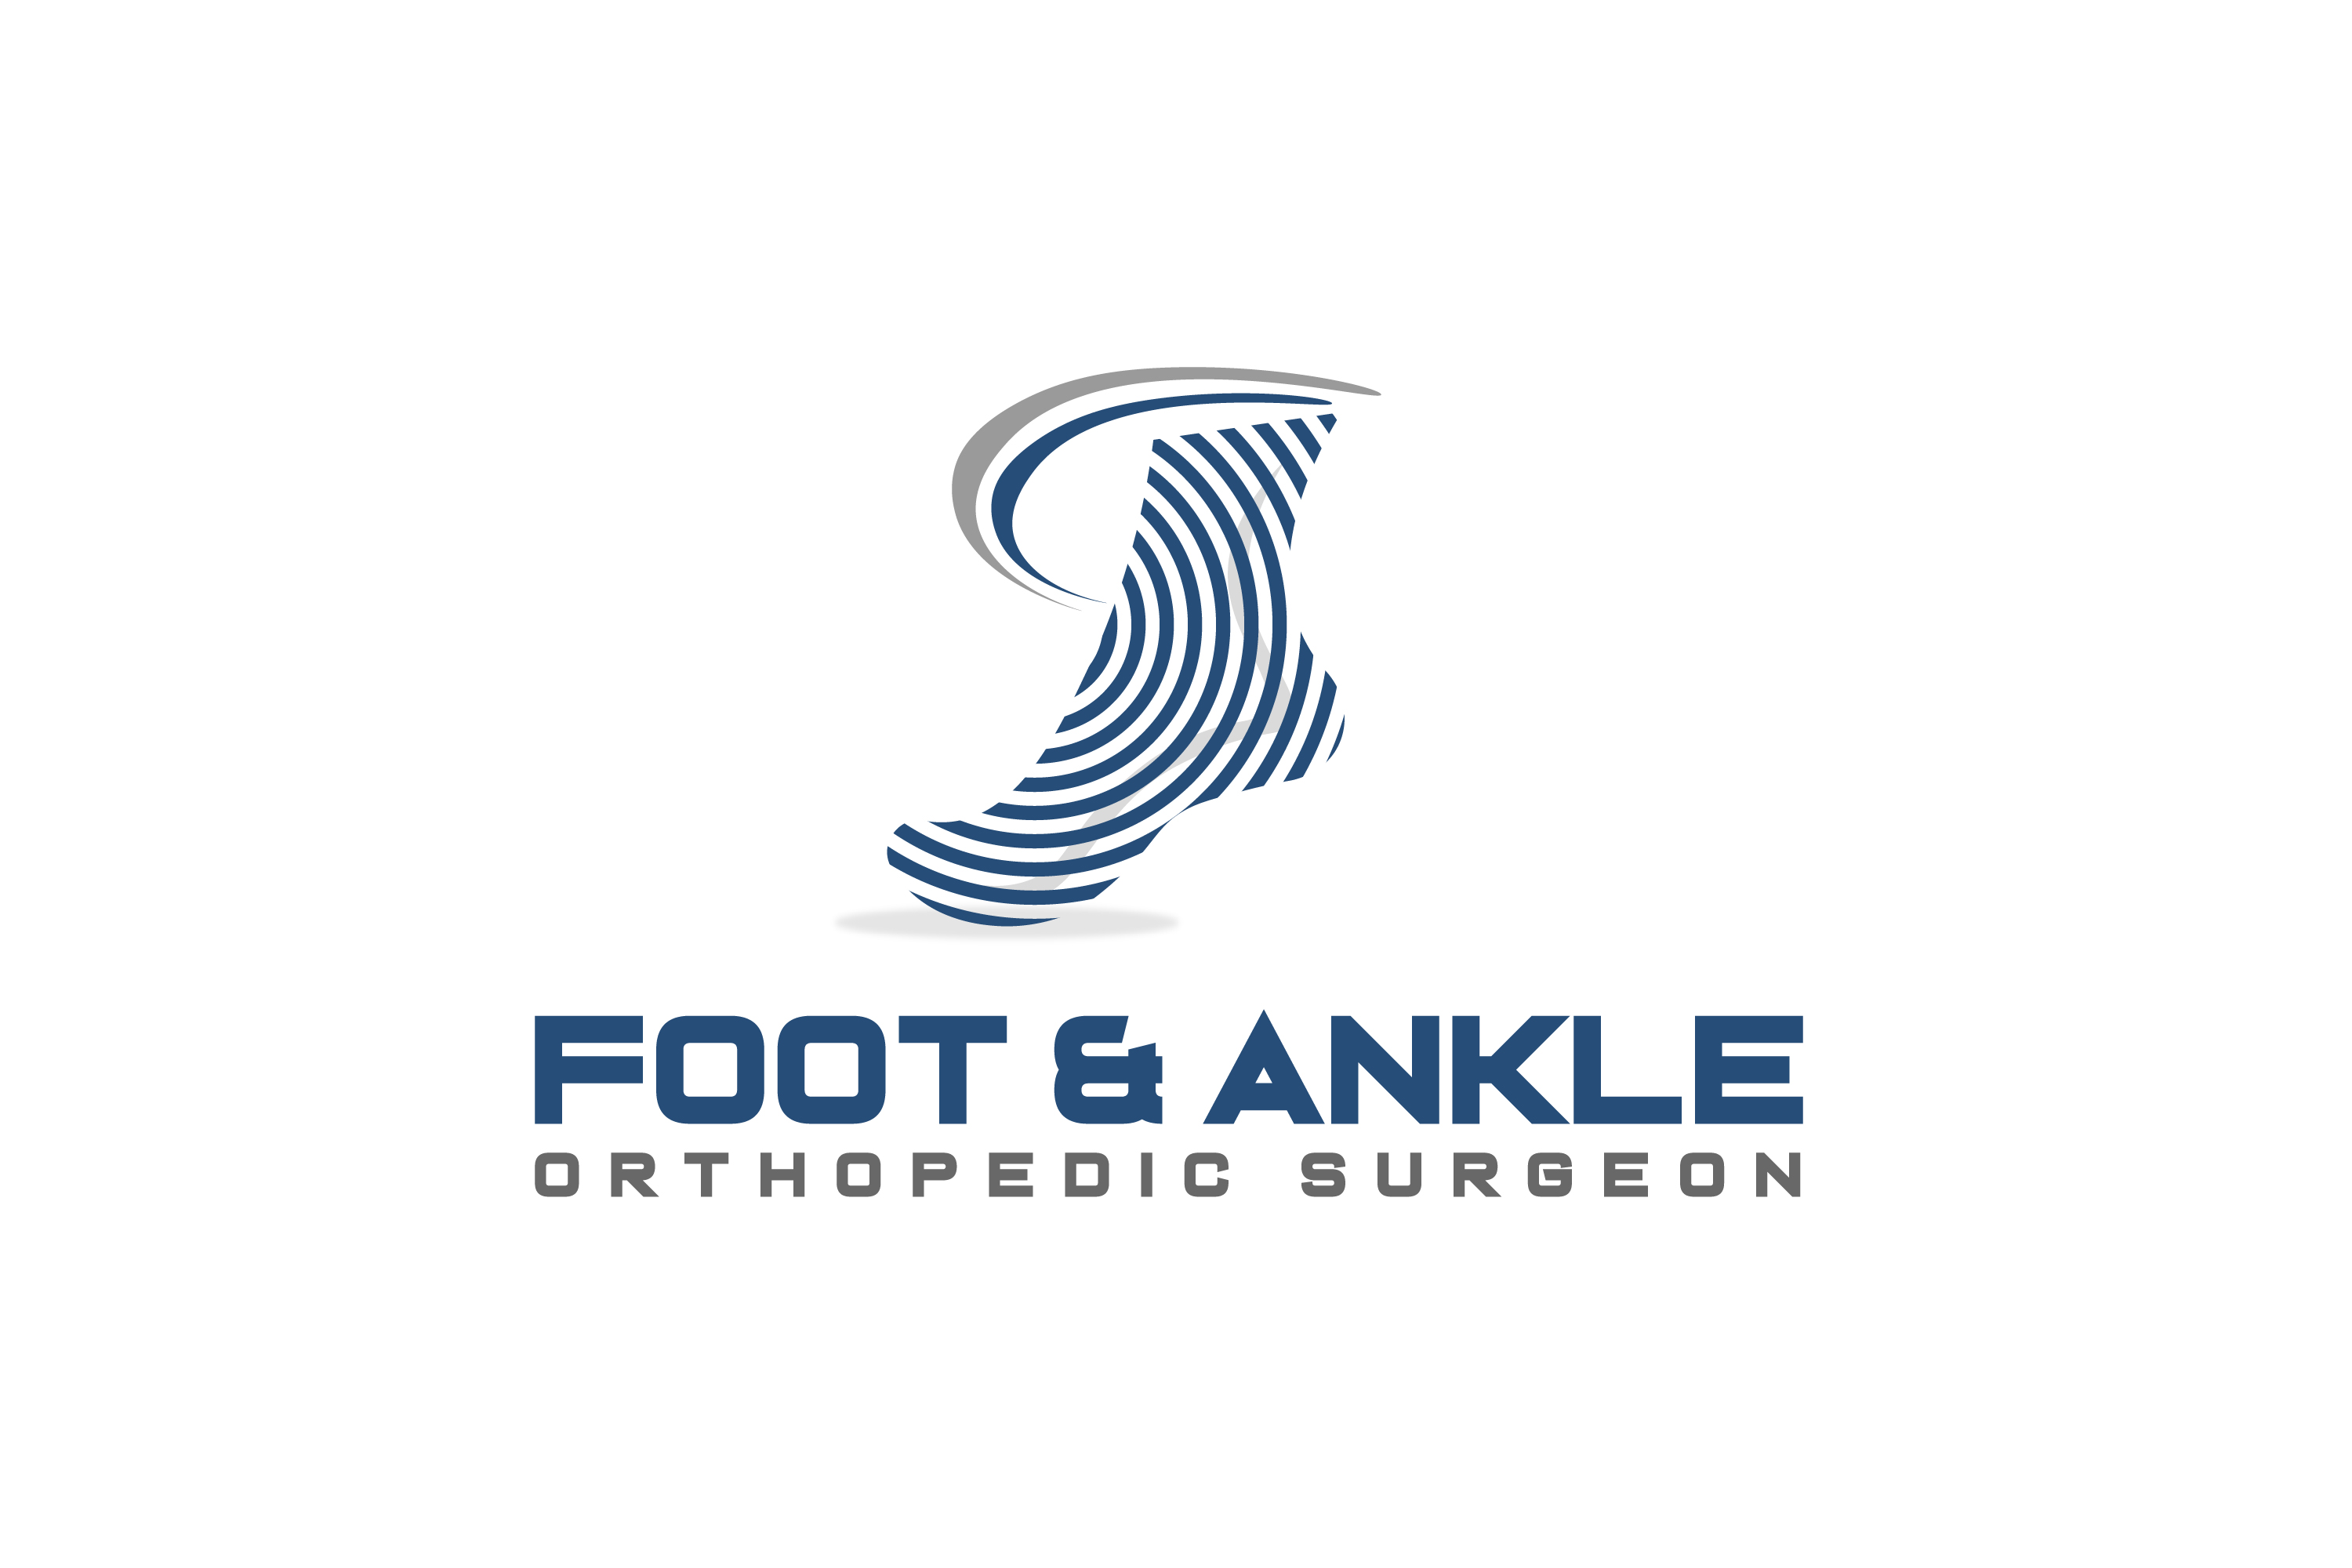 Logo Design For Foot Amp Ankle Orthopedic Surgeon By Graphicholedesign Design 23743495